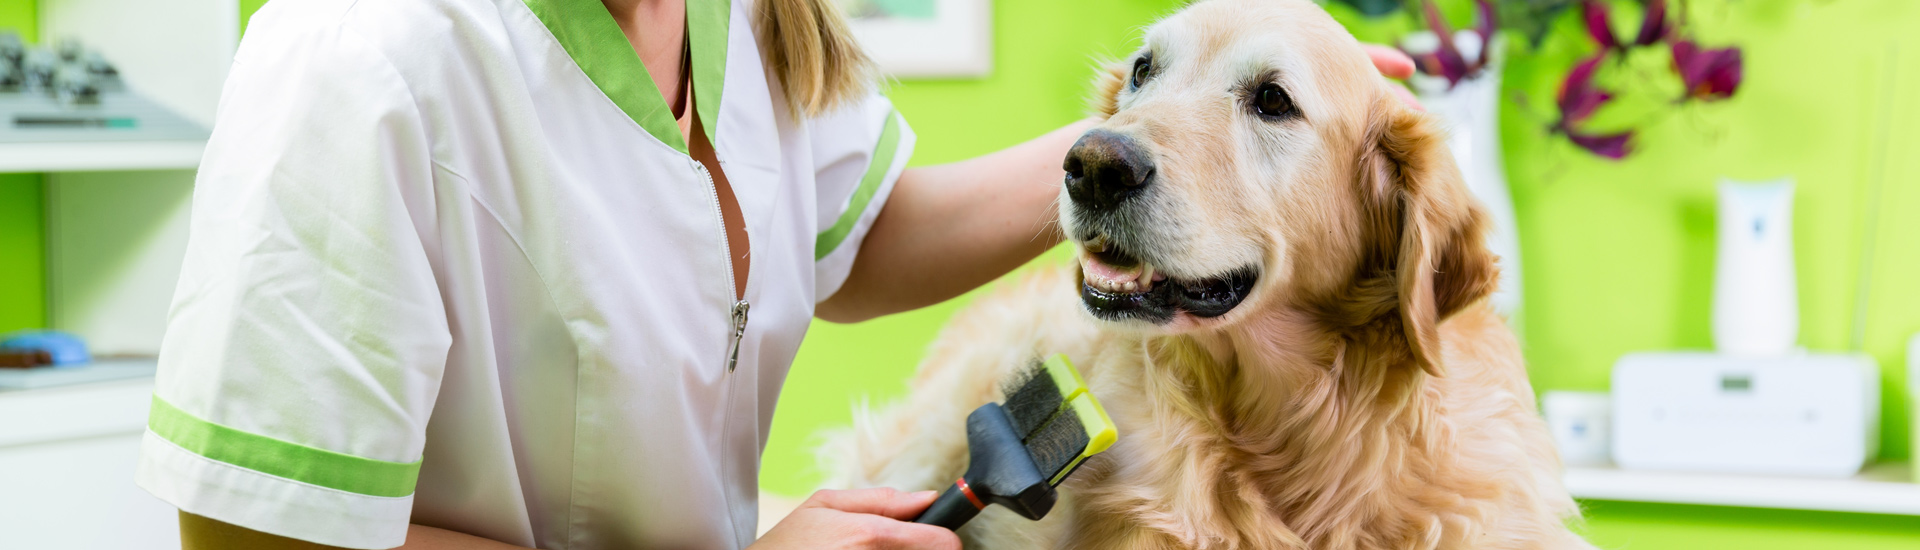 Pet Grooming Classes Knoxville, TN